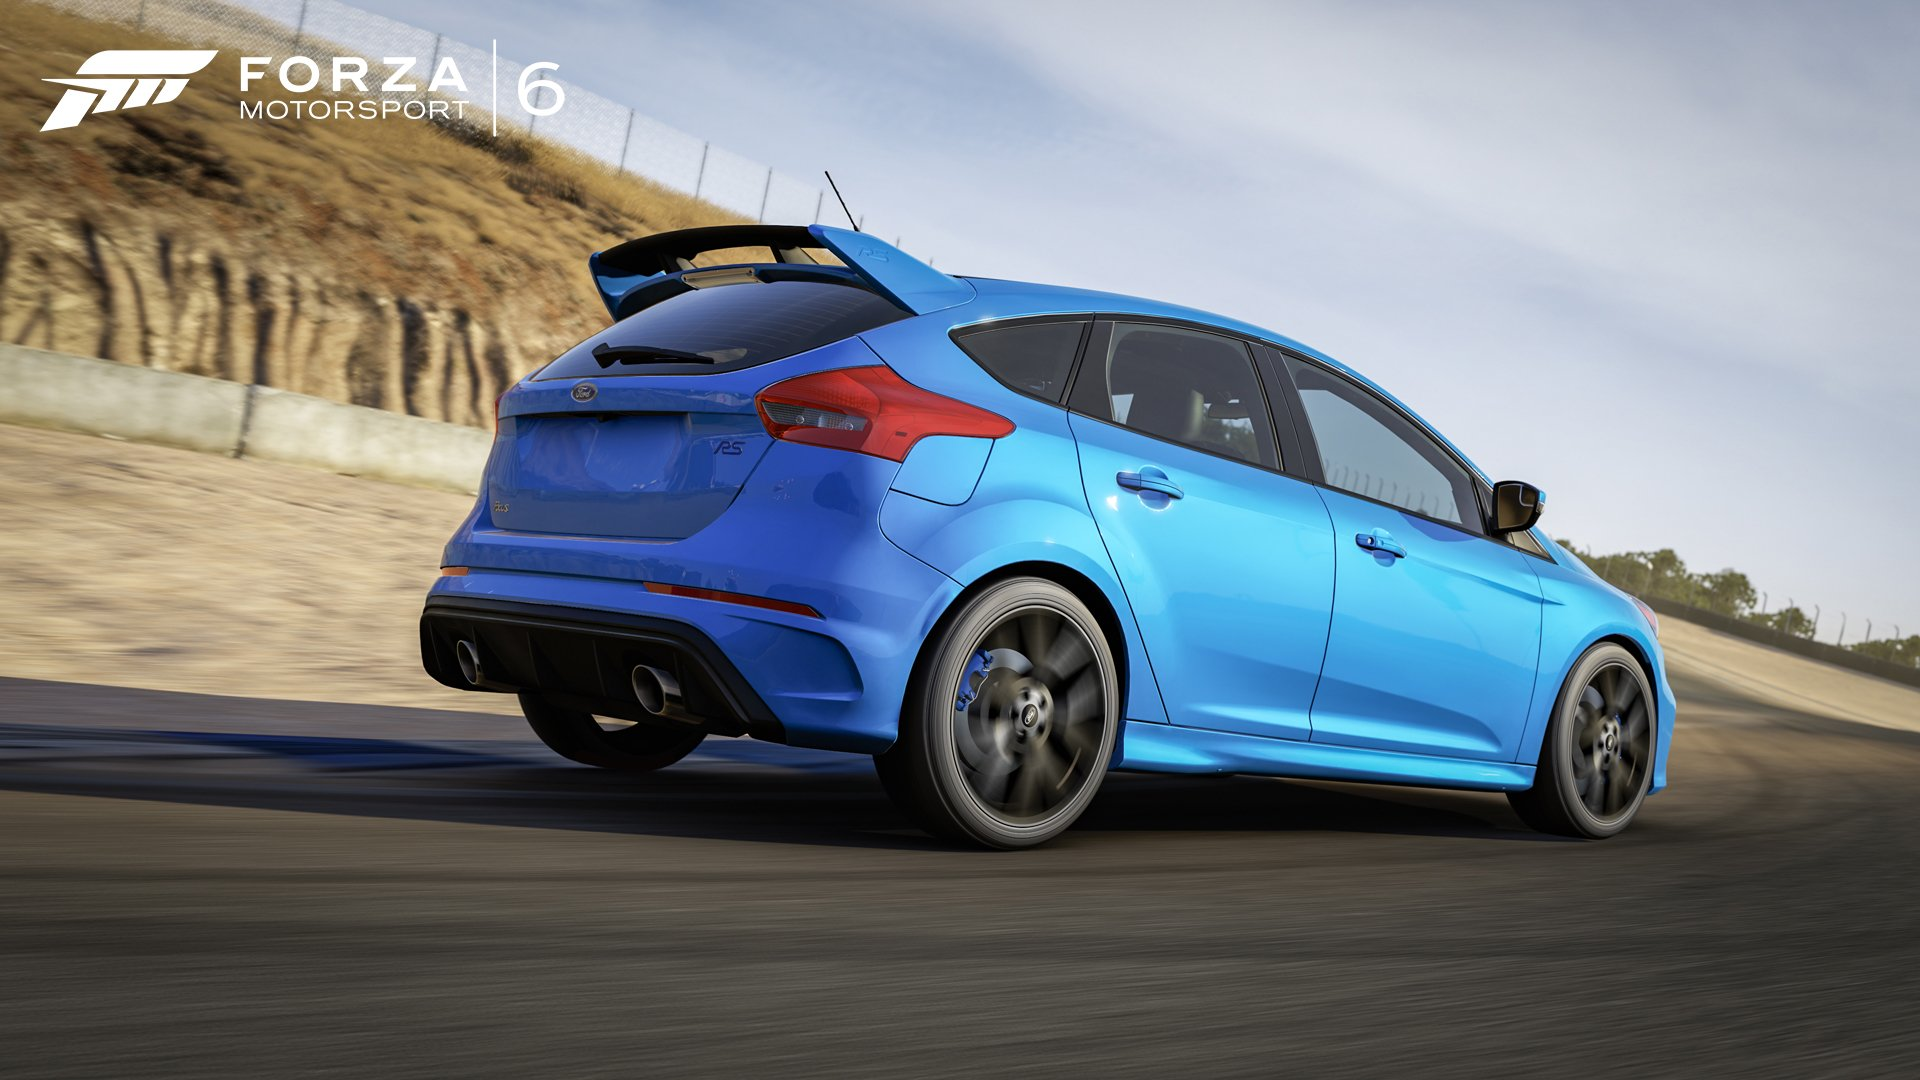 2017 Ford Focus Rs Hd Wallpaper Background Image 1920x1080